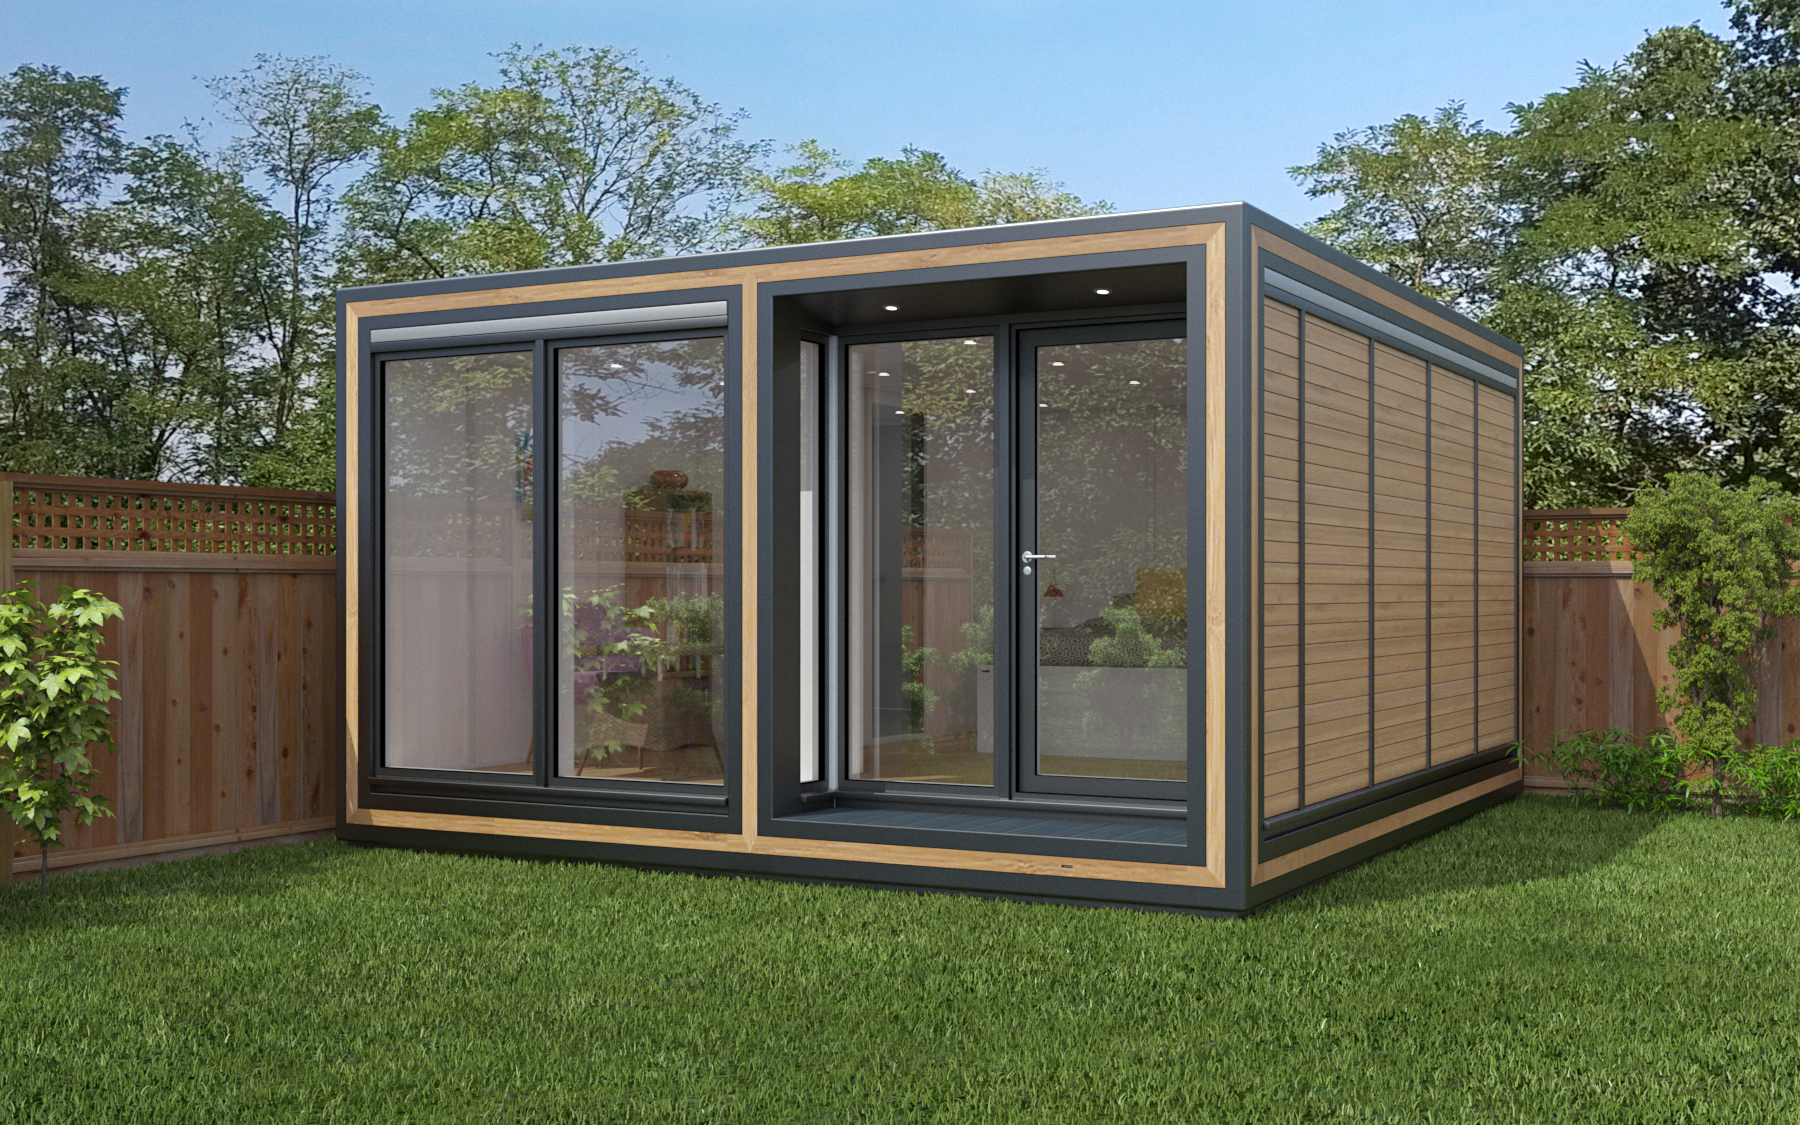 ZEDBOX 445  (4 x 4.5)  Internal Size: 4259 x 4817  External Size: 4279 x 5287  Bed Options: Single or Double  Kitchen Options: Micro or Premier  Wet Room Options: Yes  Portico: Yes  Price:  £36,000    Optional Extras    Request Zedbox Catalogue